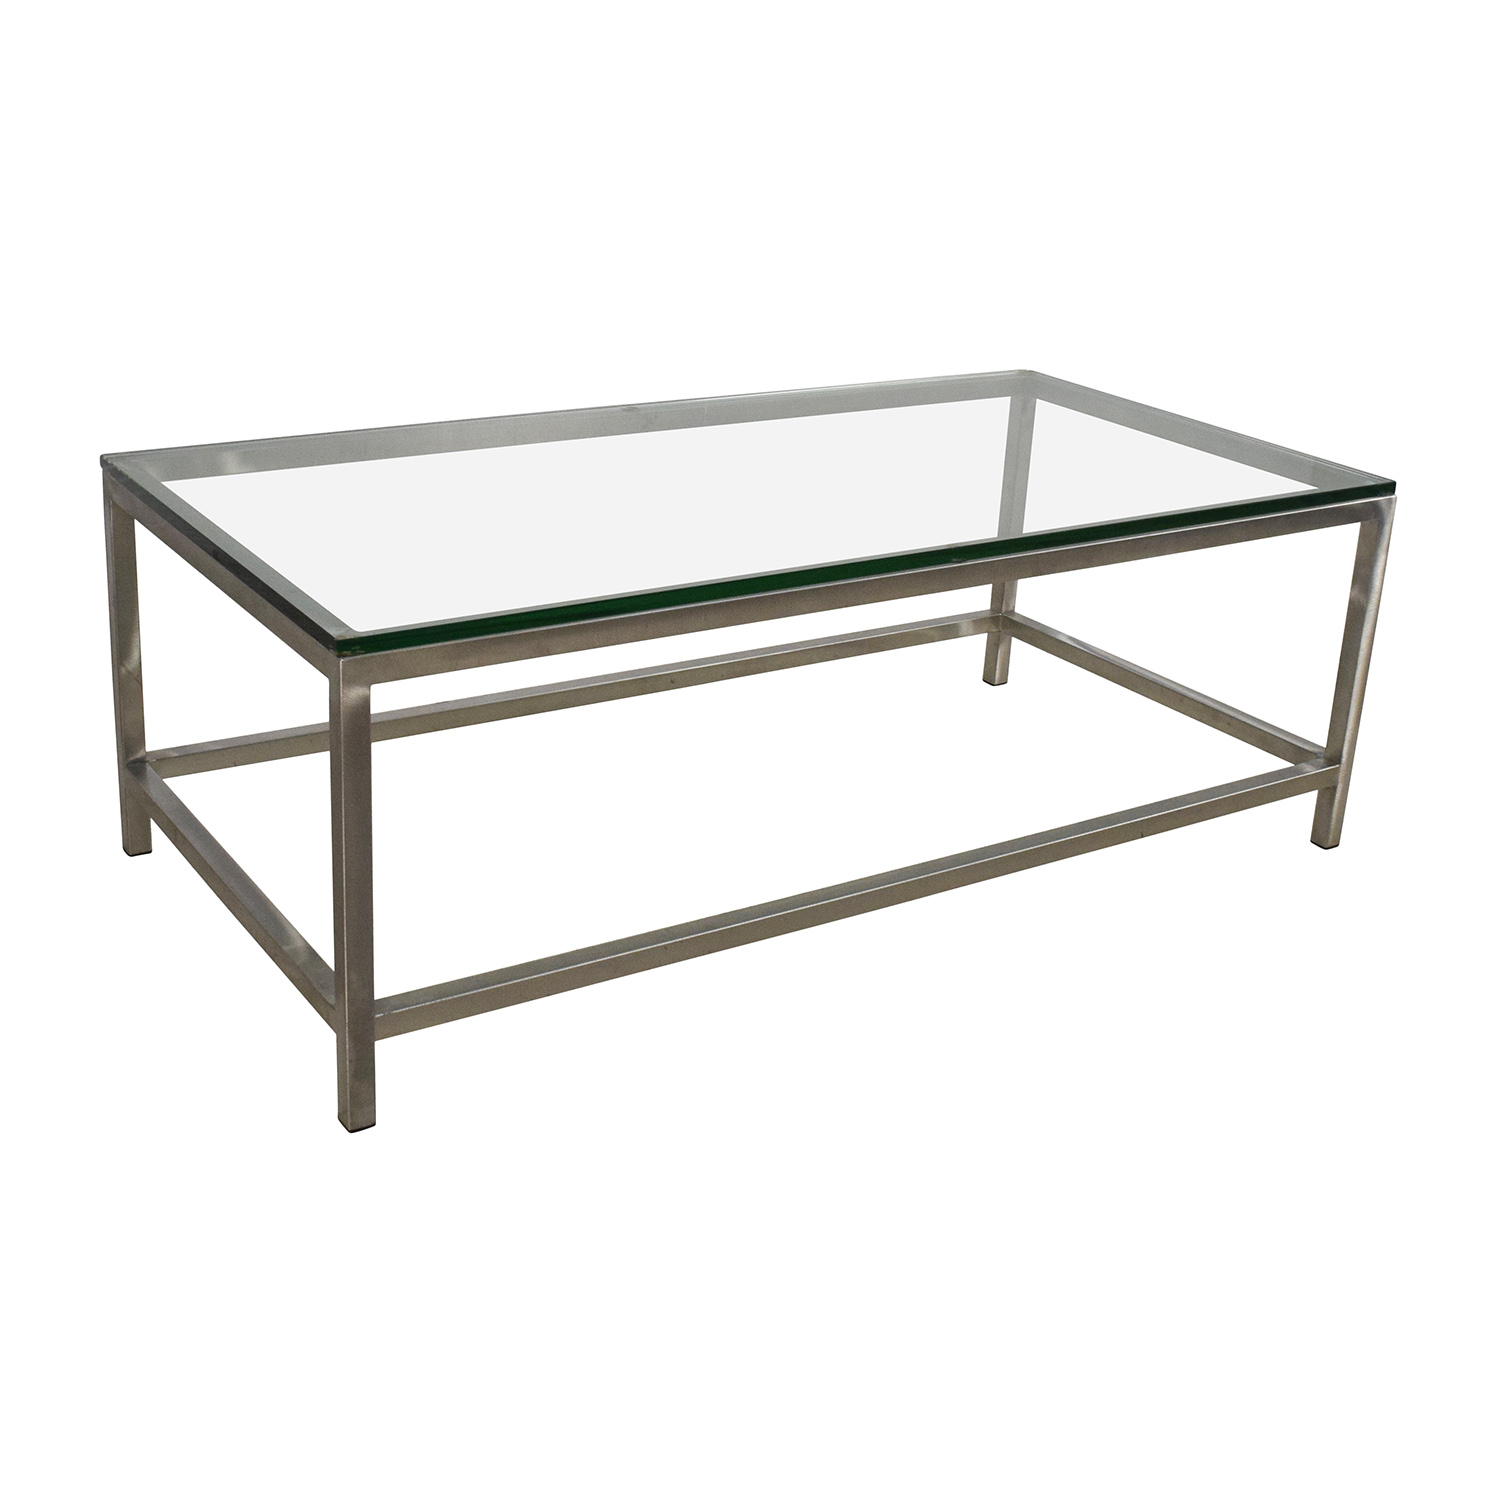 64 Off Crate And Barrel Crate Barrel Era Rectangular